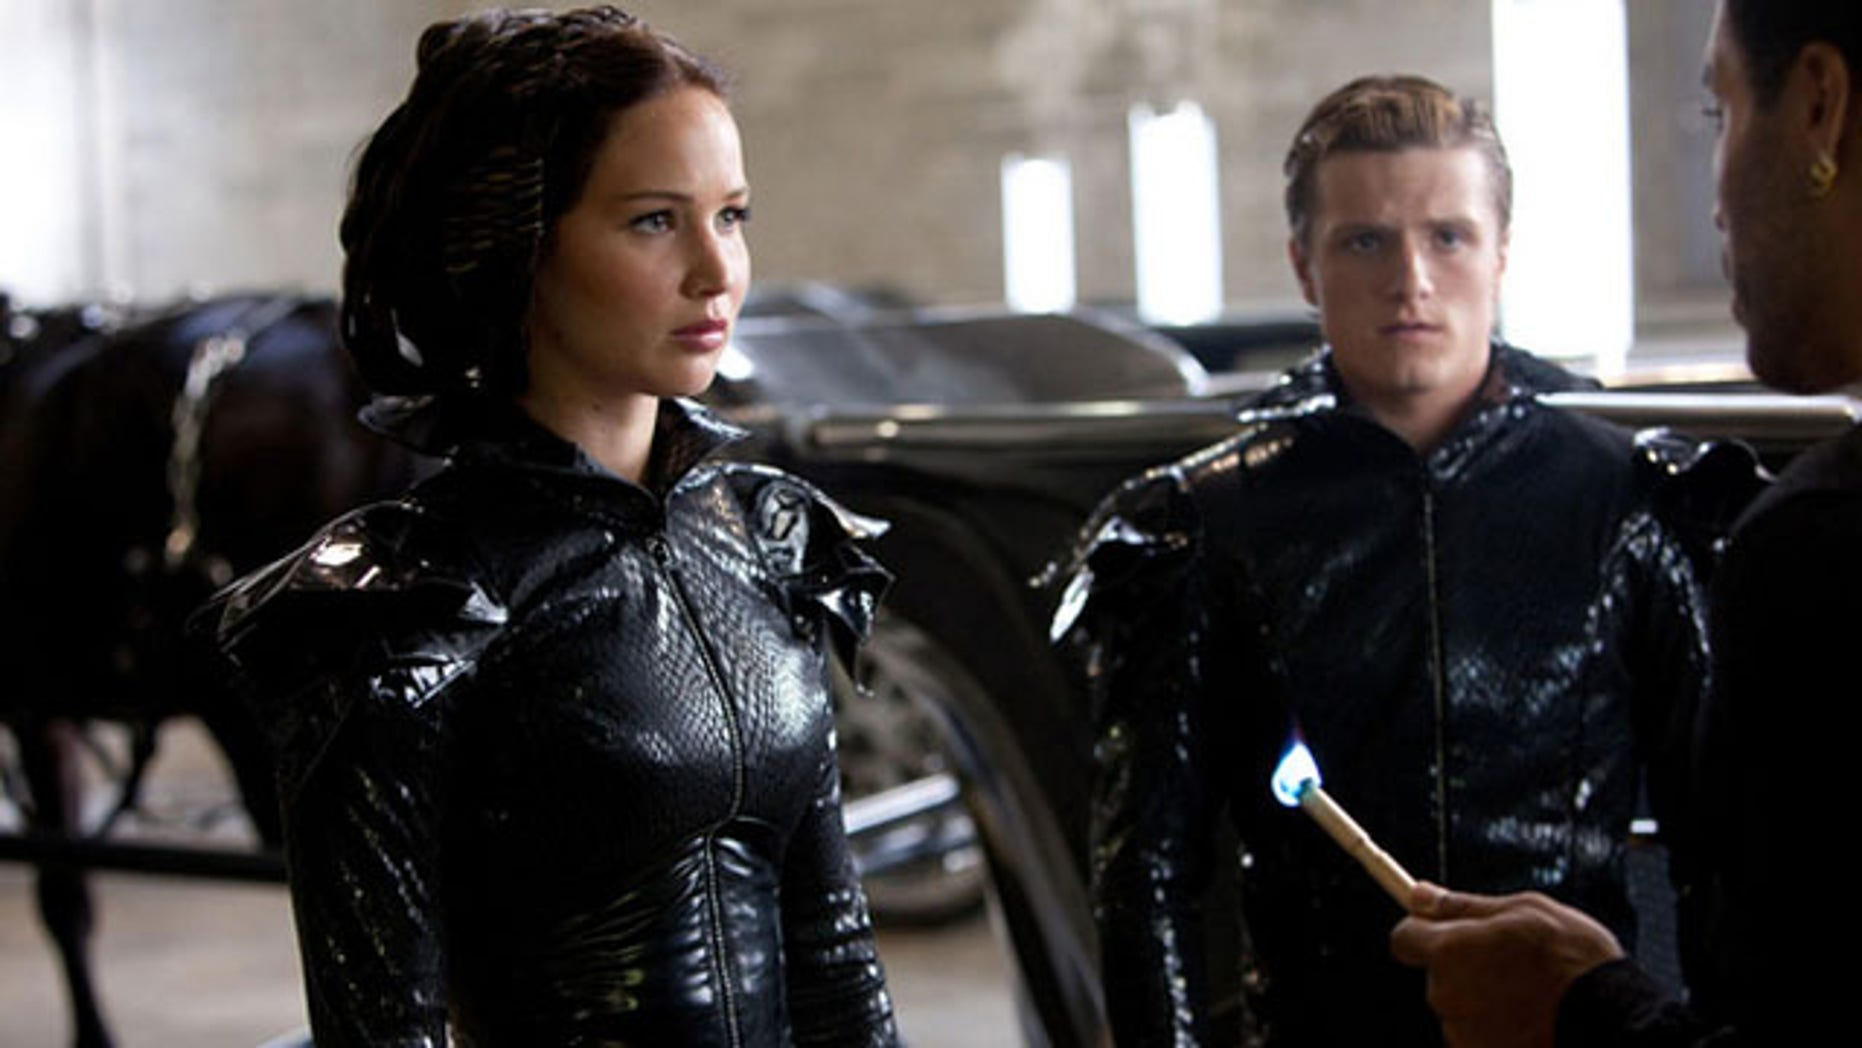 """Hunger Games"" heroine Katniss Everdeen and fellow tribute Peeta Mellark wait to be lit on fire before making their fiery public debut."